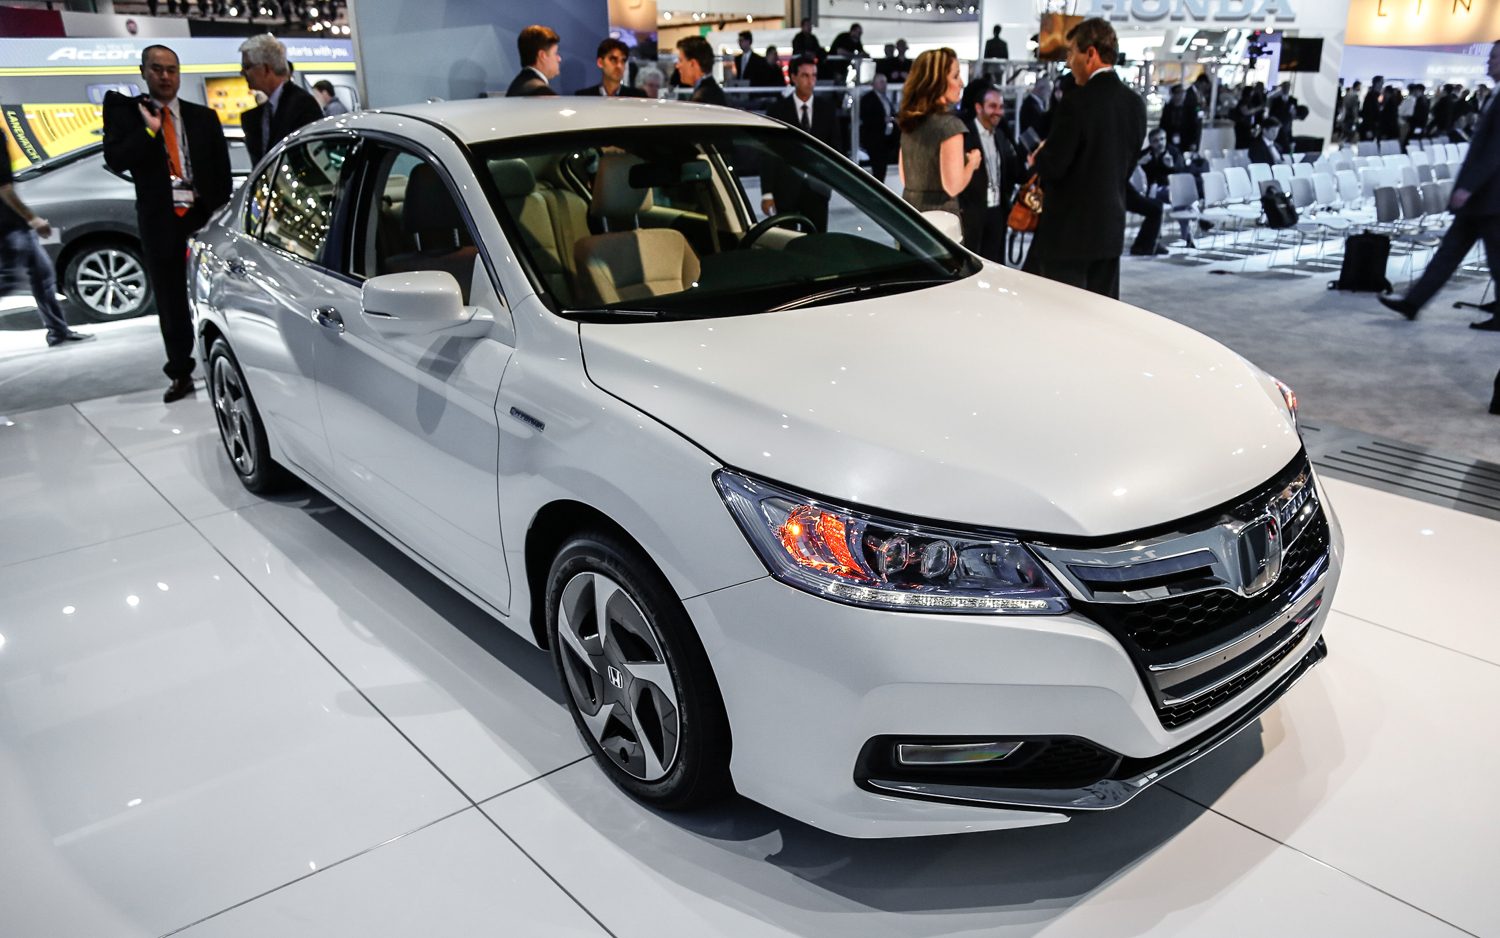 Charming 2014 Honda Accord Plug In Hybrid Now On Sale In California, New York